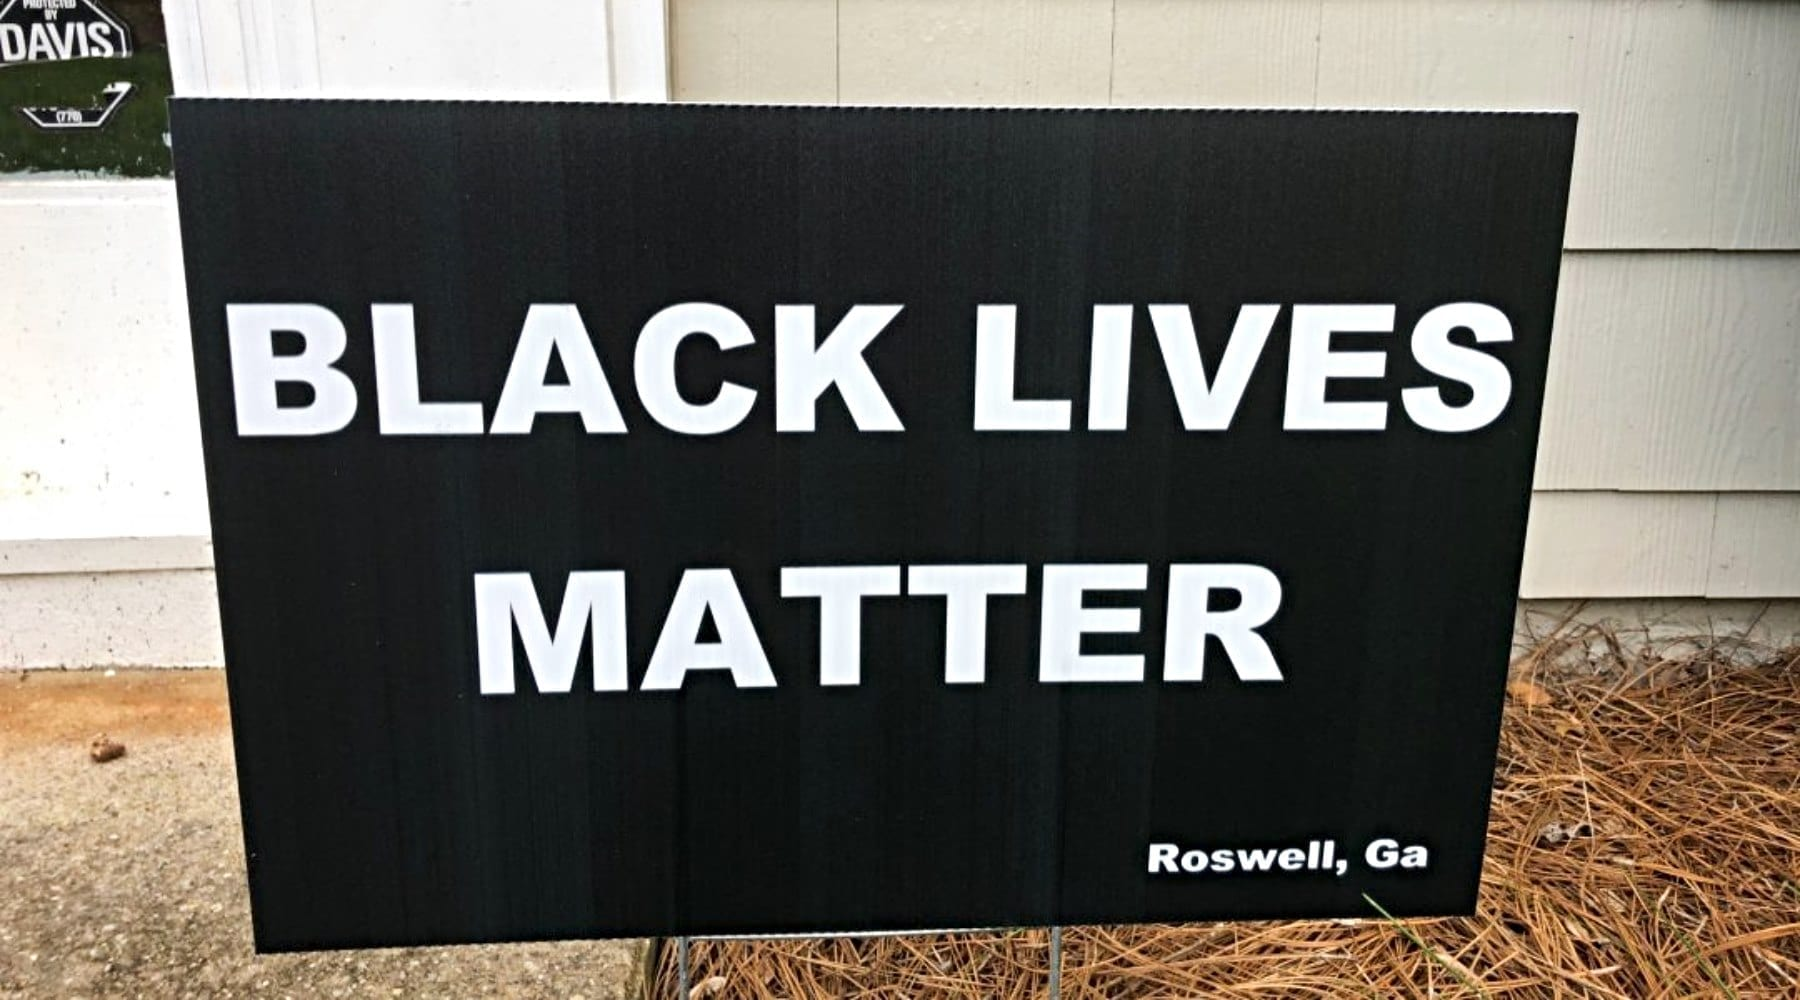 It's Time to Make Black Lives Matter